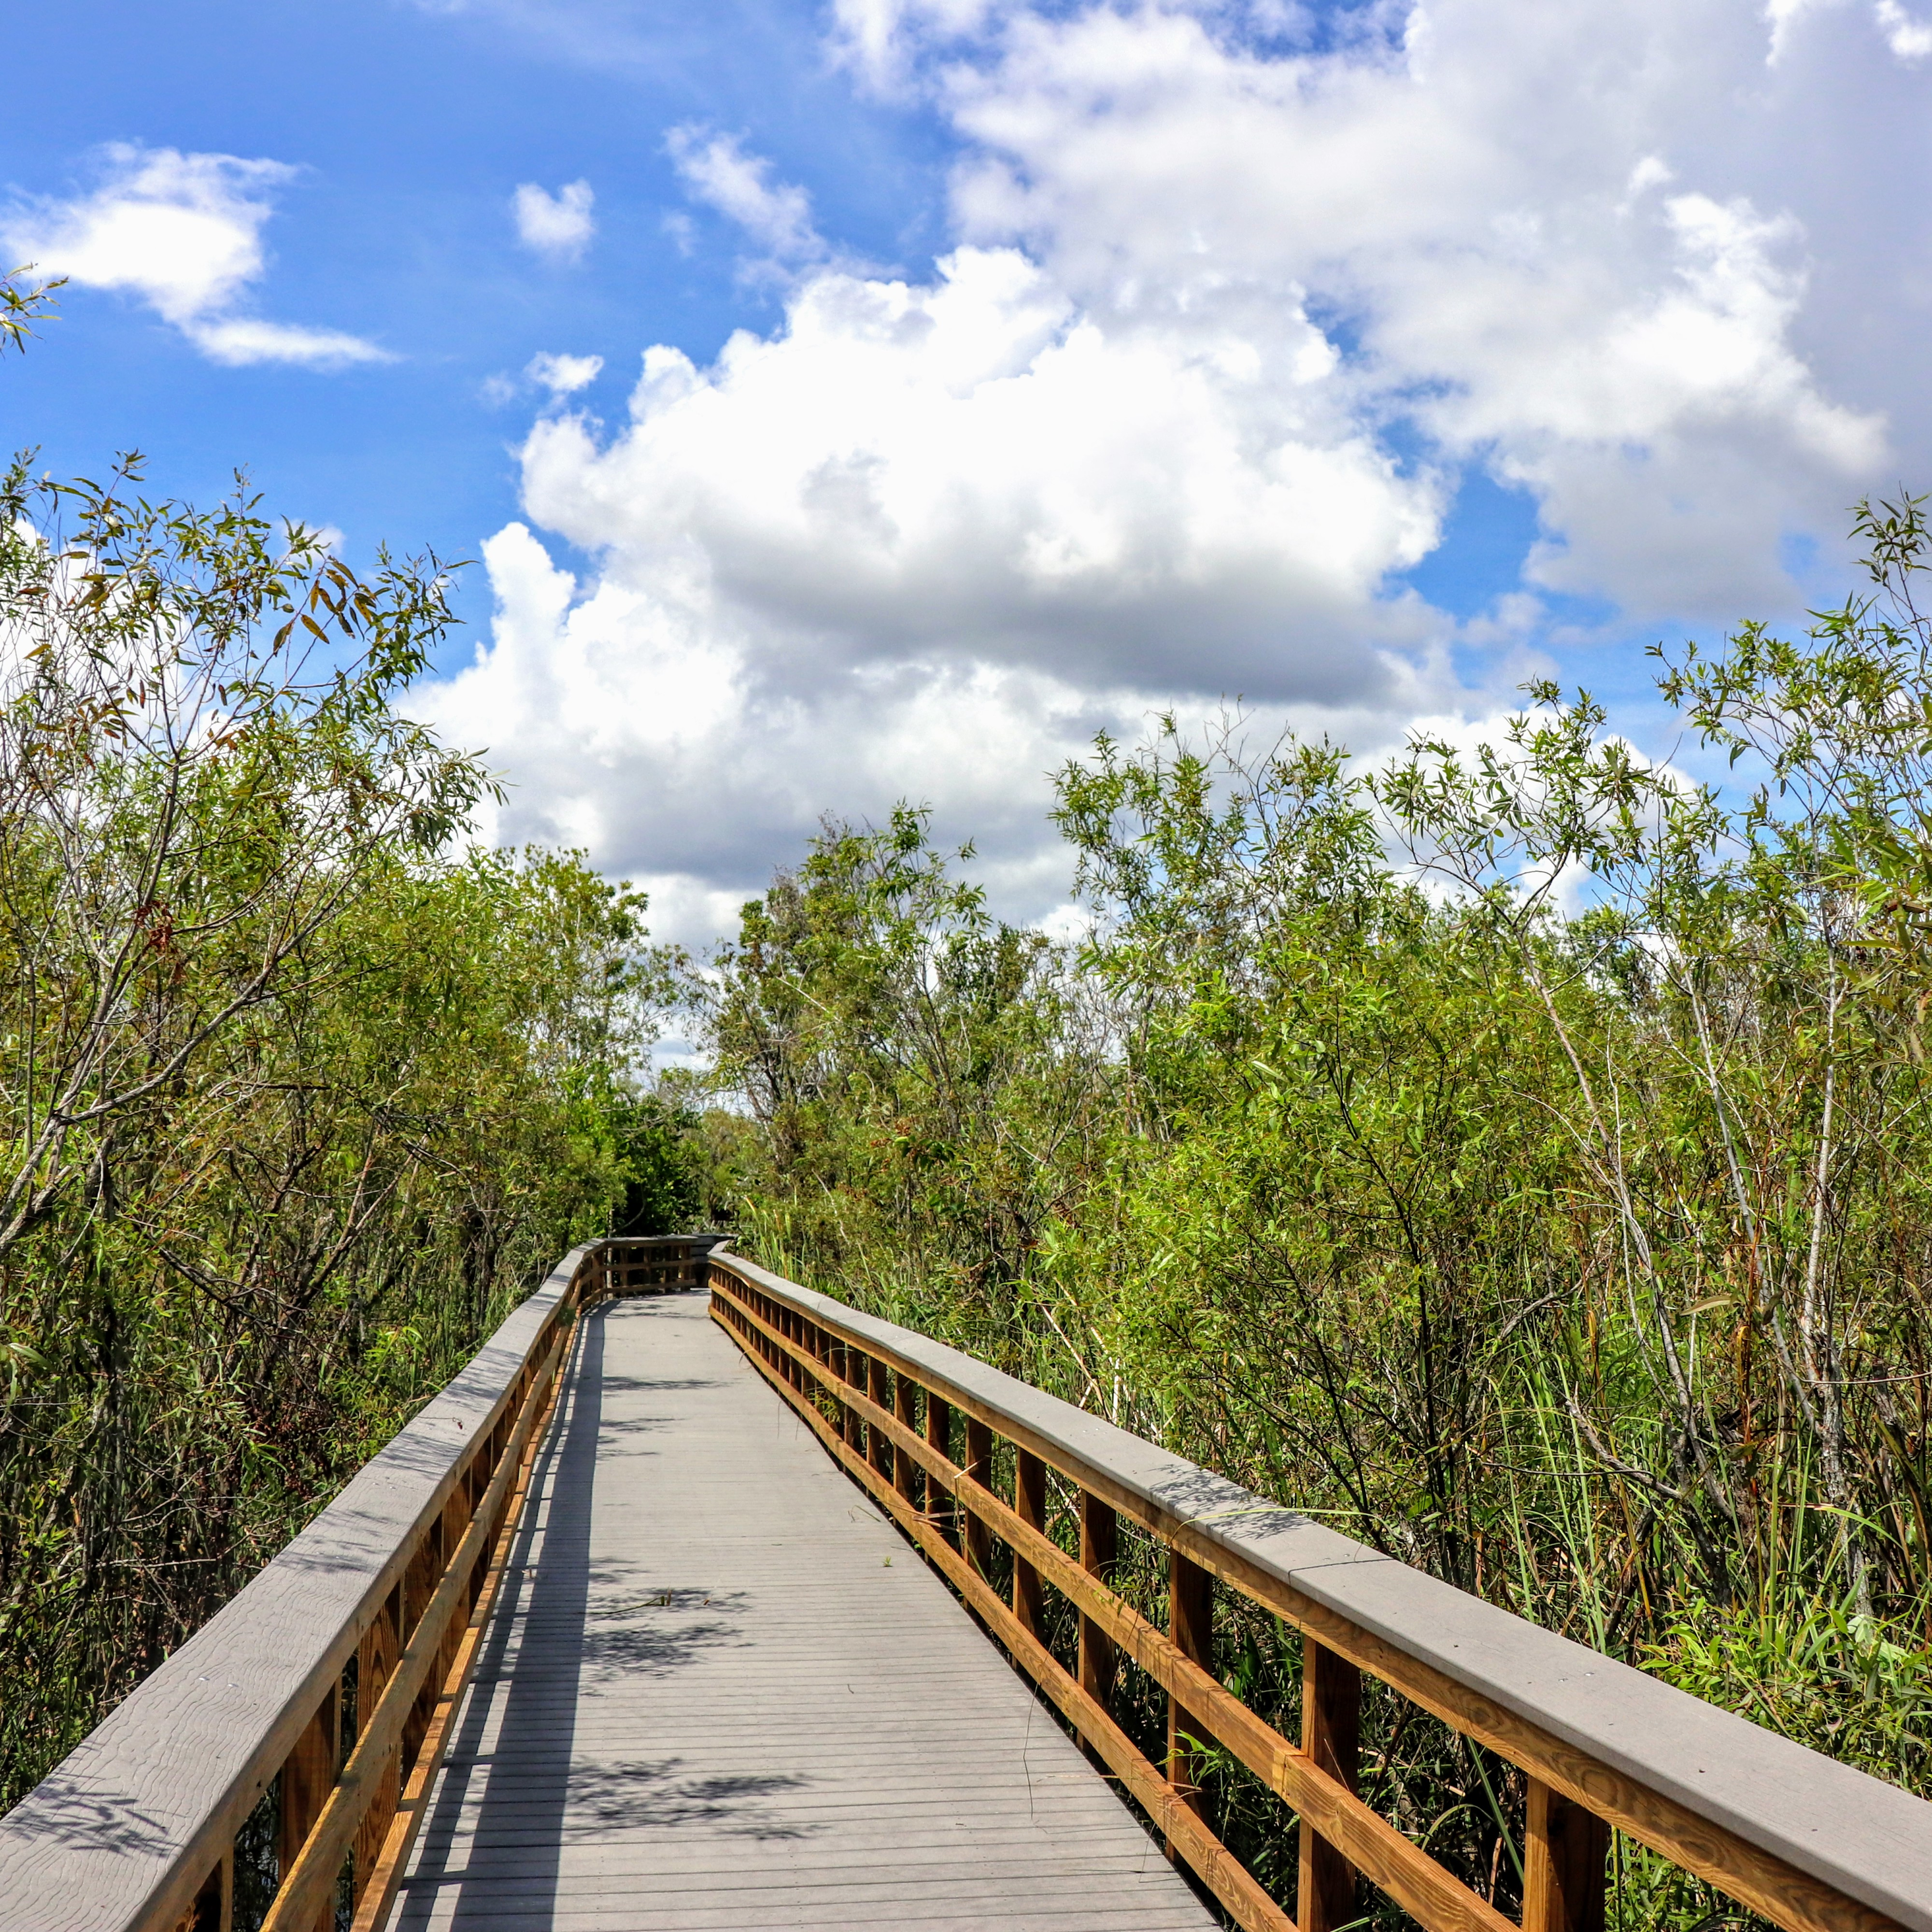 Bobcat Boardwalk in Shark Valley Everglades National Park